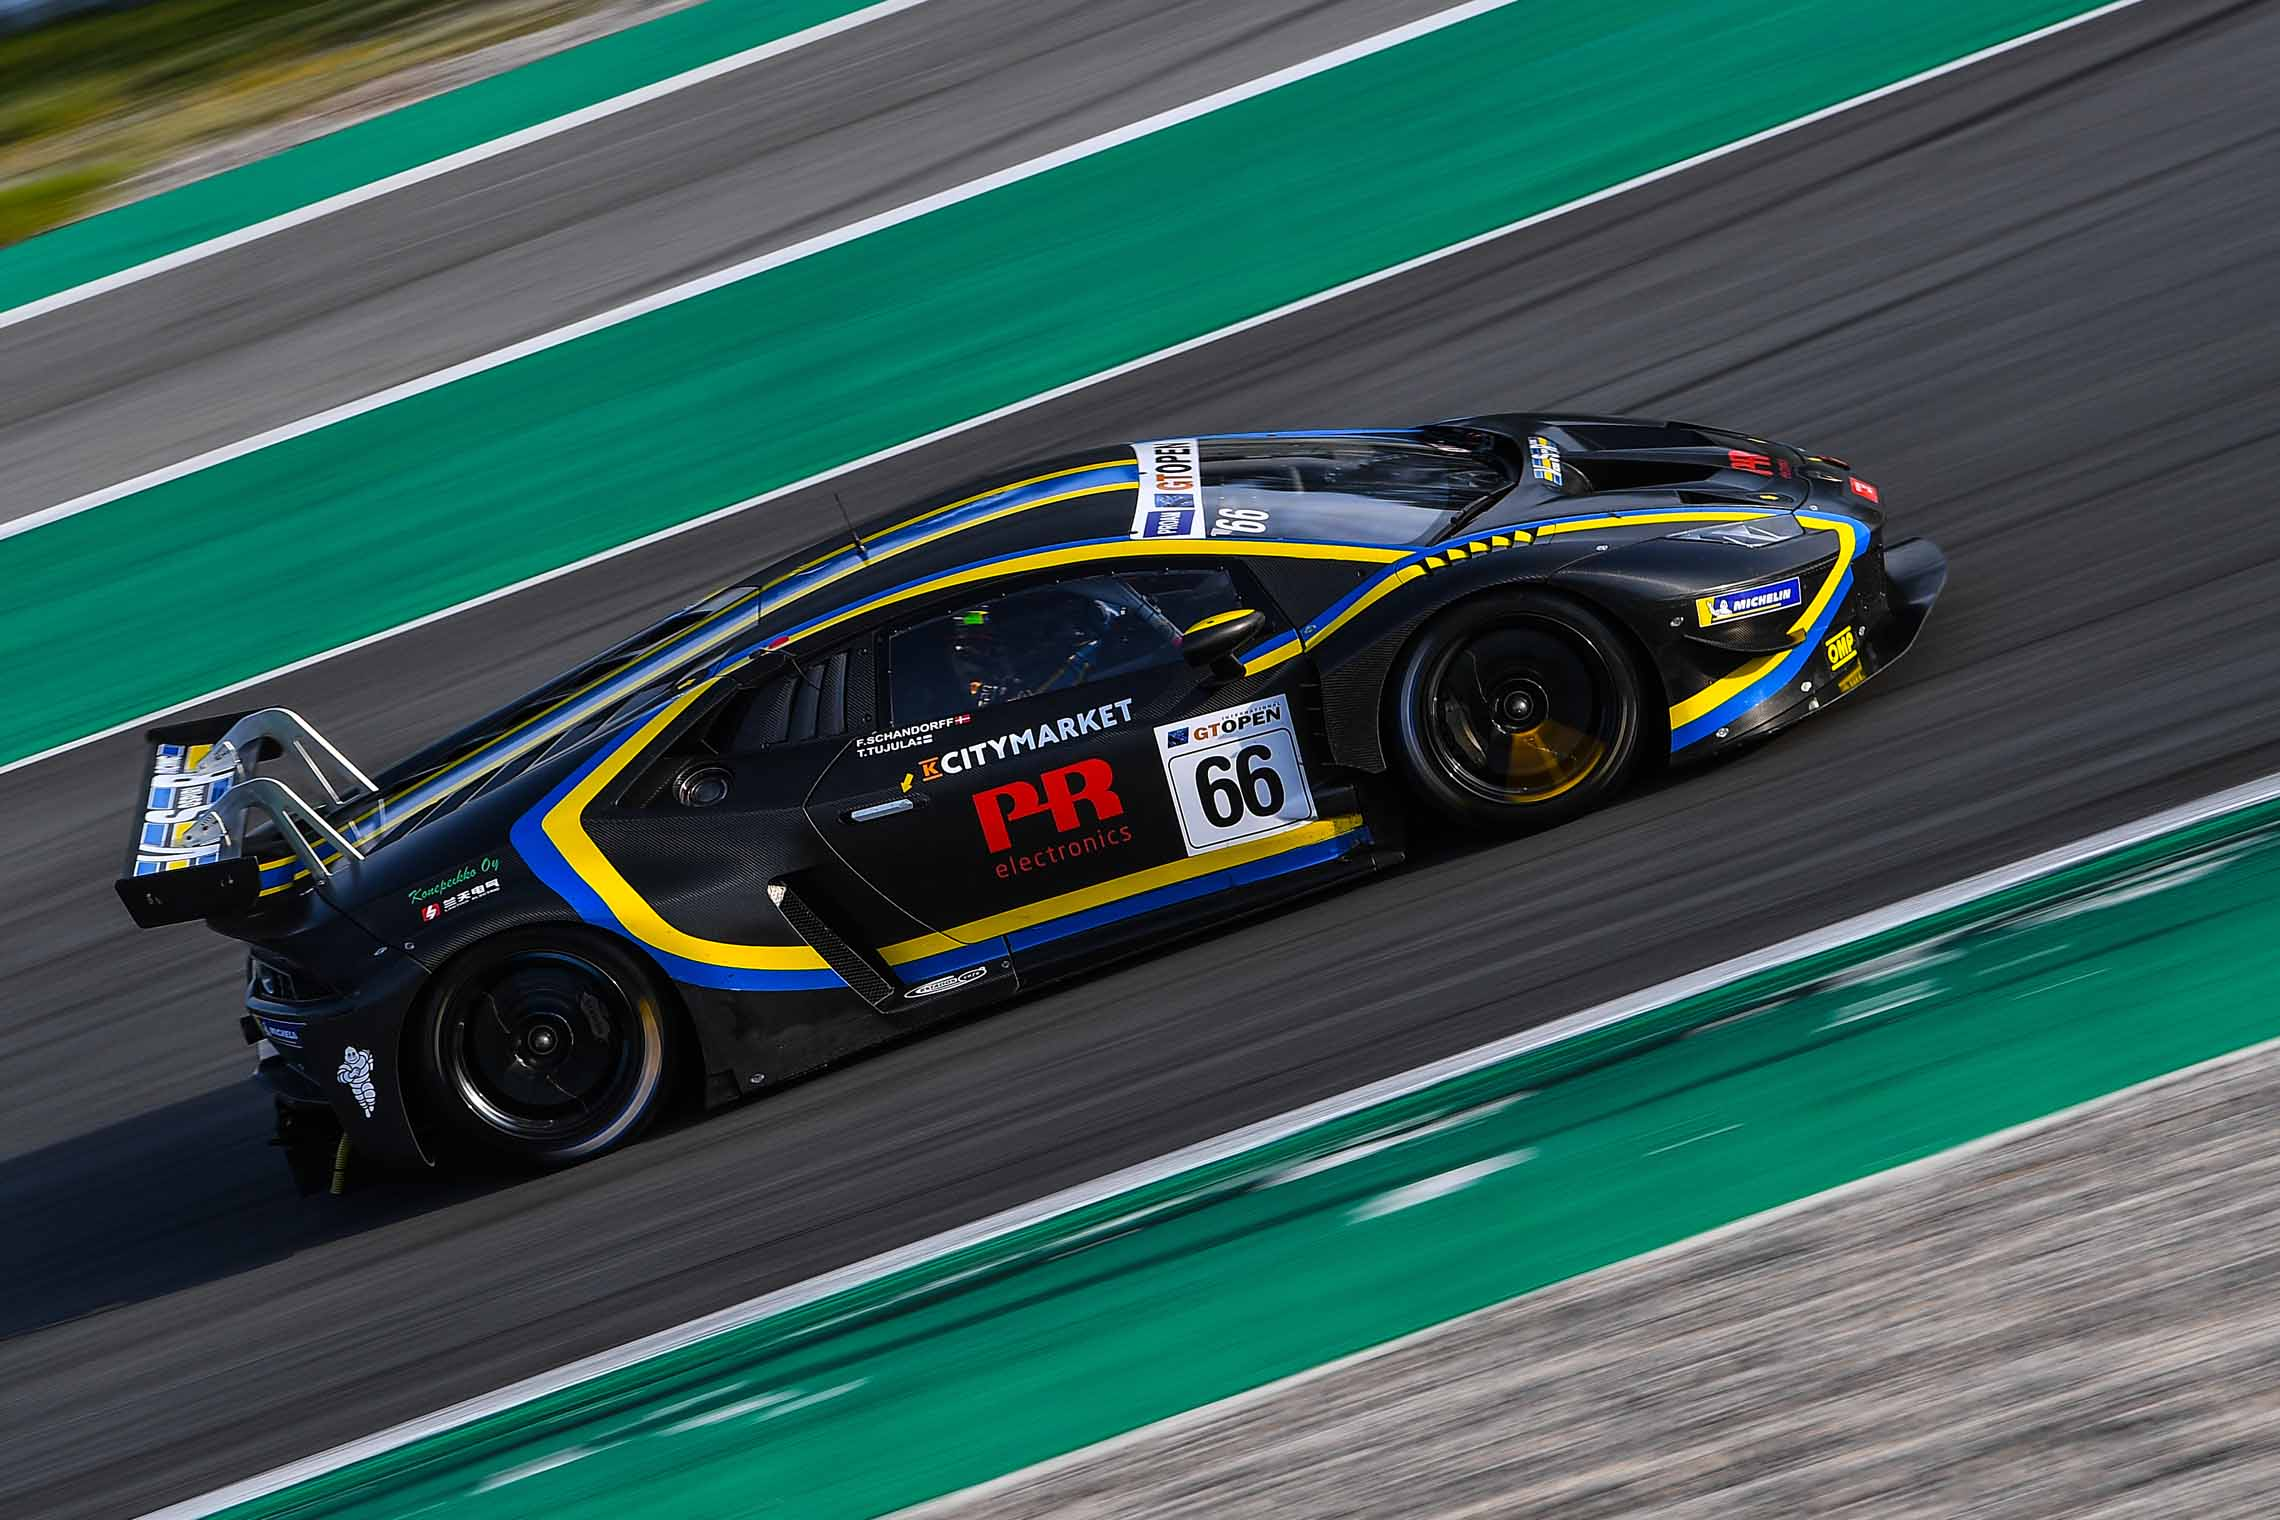 SCHANDORFF CONFIRMED AS 2019 INTERNATIONAL GT OPEN PRO-AM CHAMPION